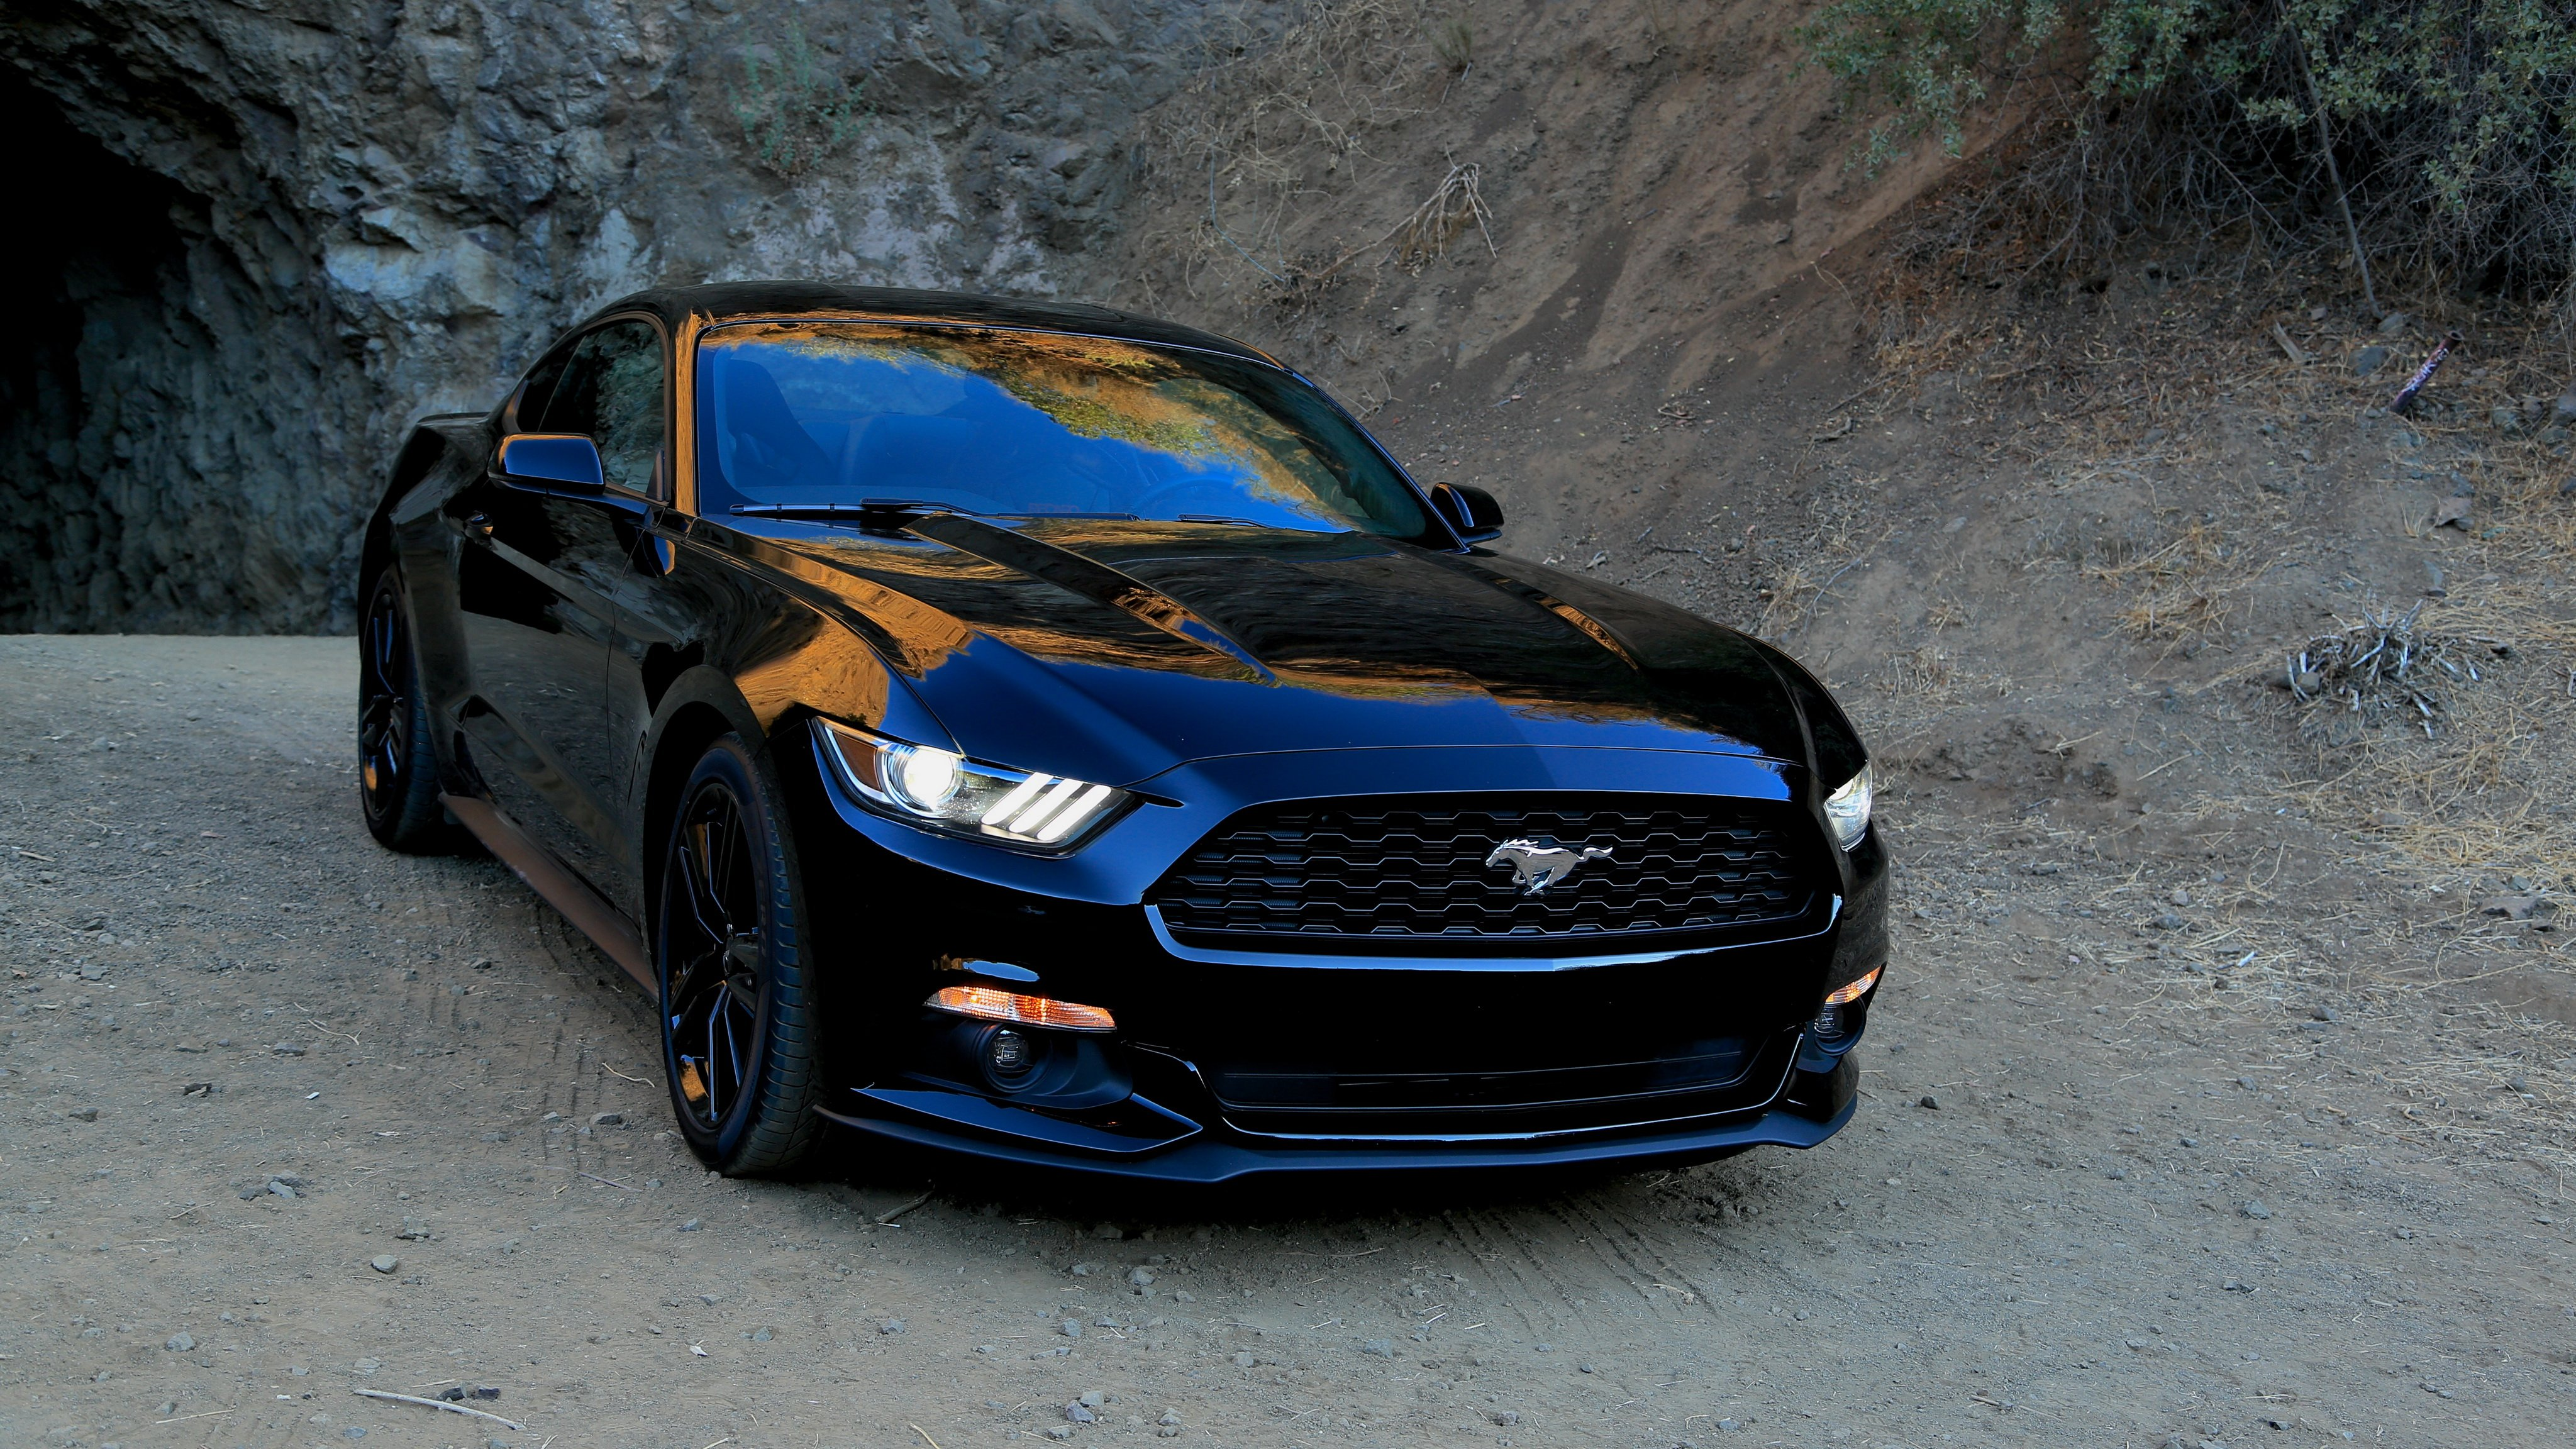 2015 ford mustang coupe muscle wallpaper 4096x2304